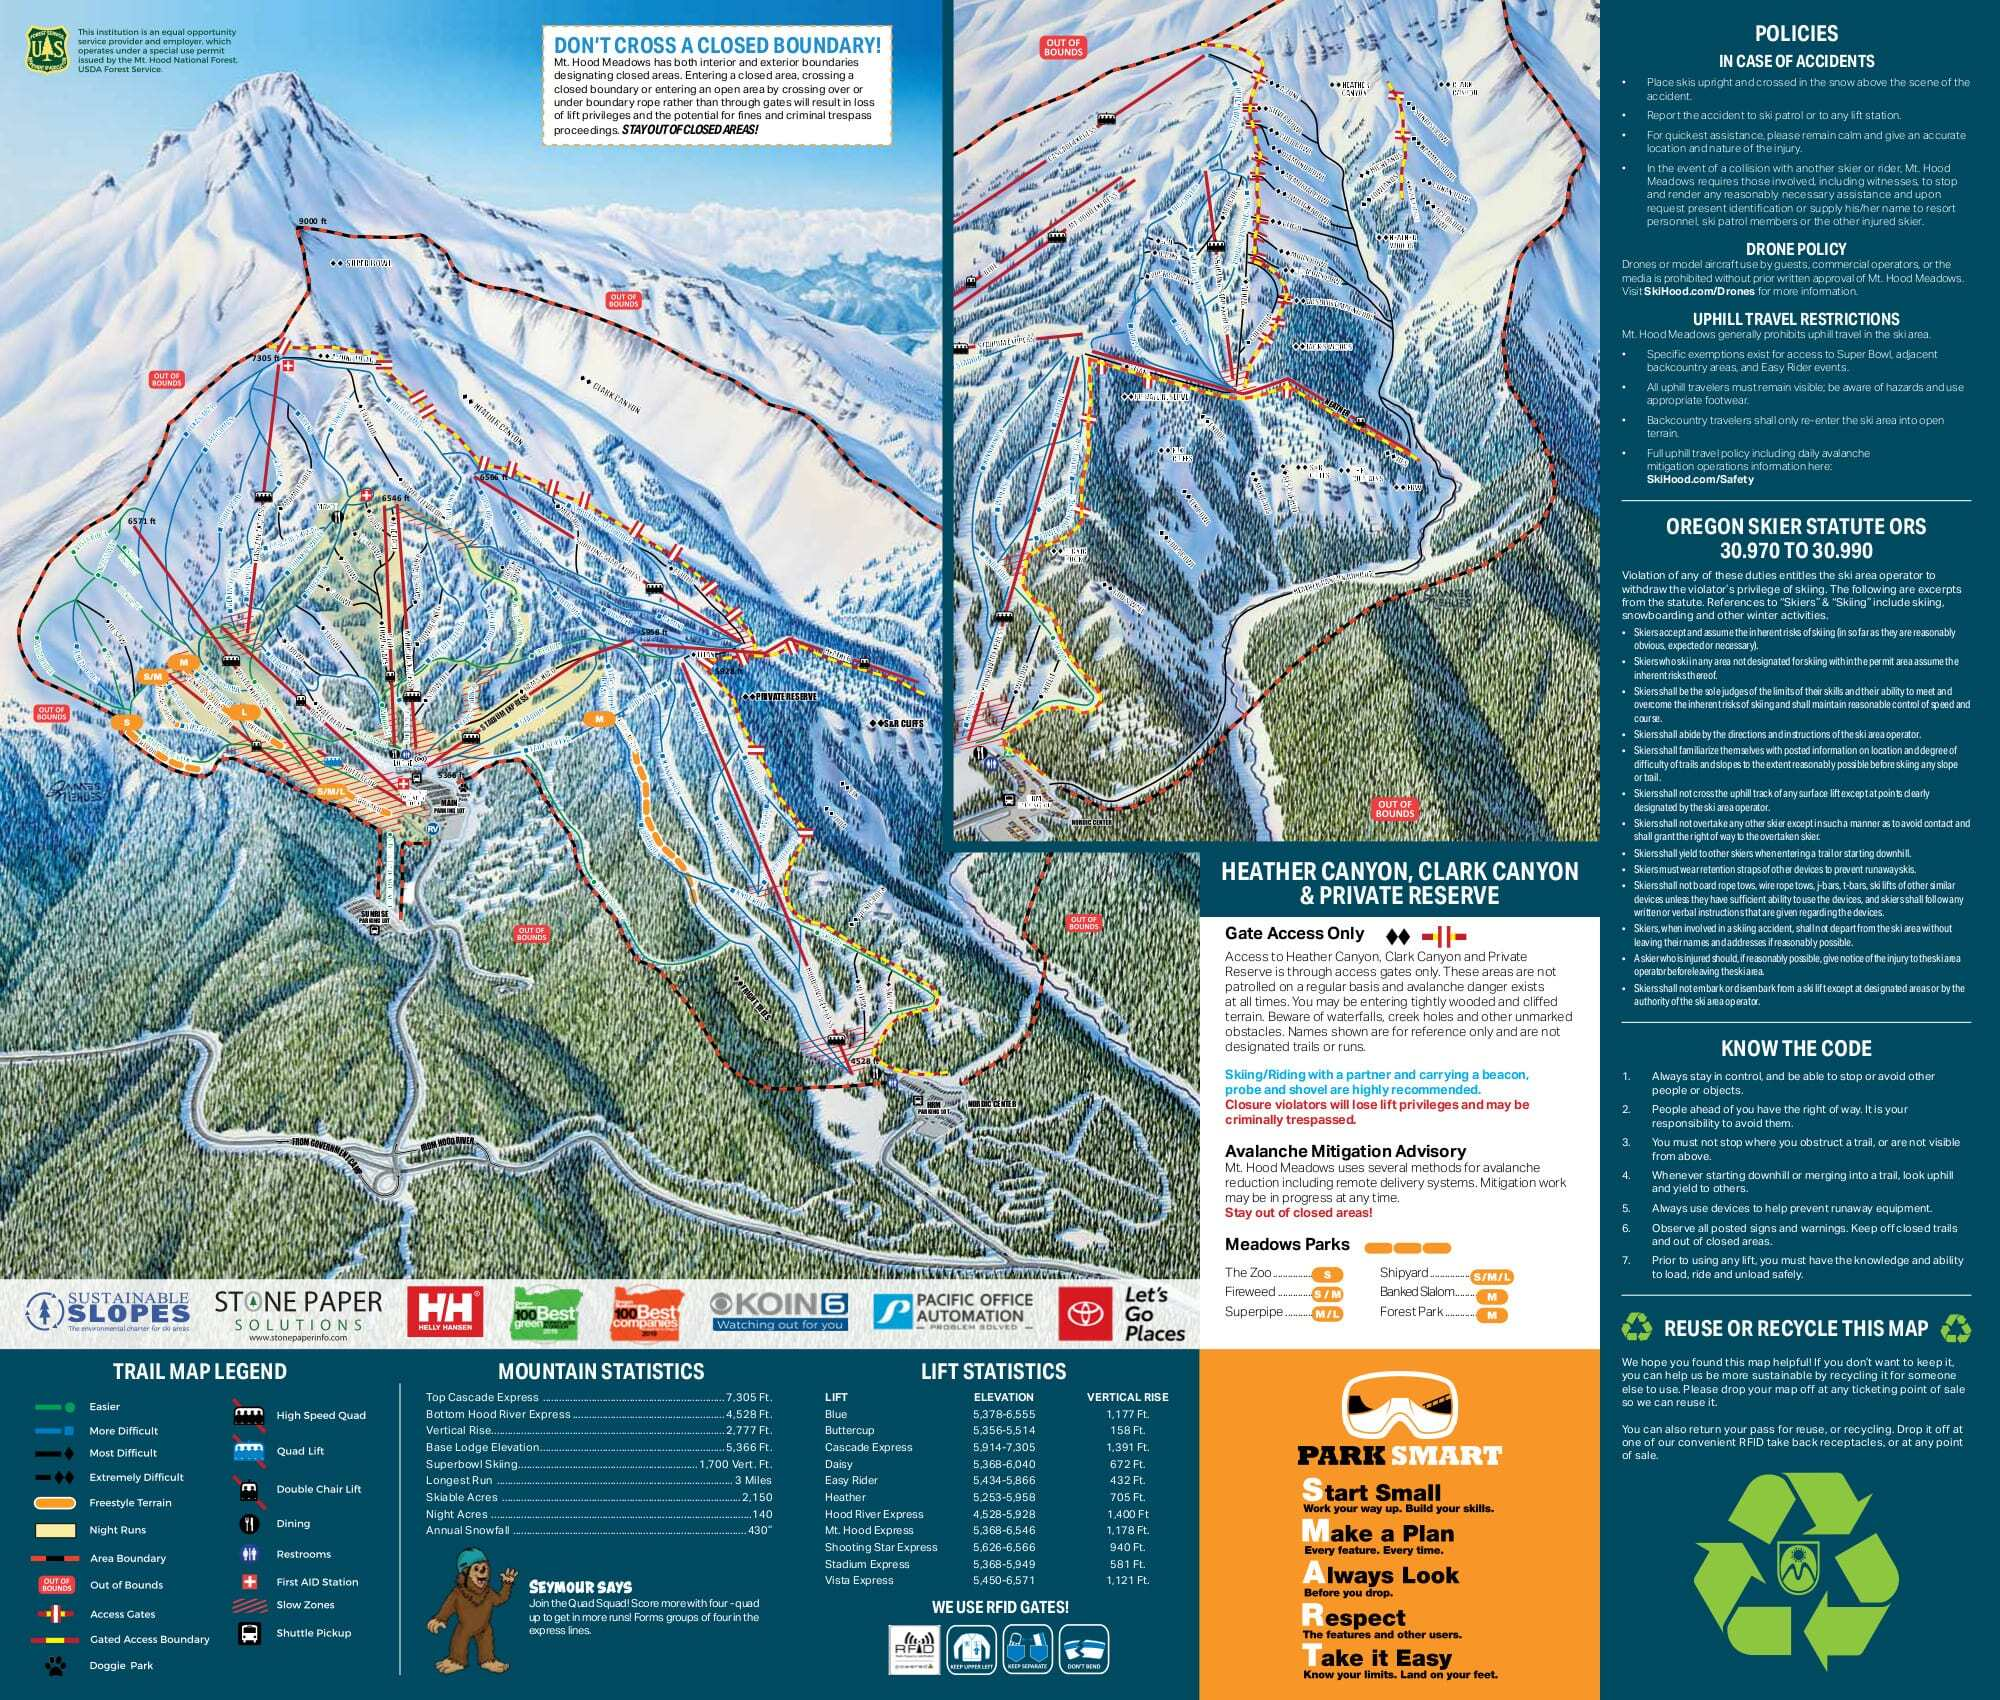 Mt Hood Meadows Piste Map / Trail Map Montana Ski Resorts Map on montana resort towns, mt. snow trail map, montana average temperatures by month, mt. rose ski area map, great divide ski map, montana ski areas, montana hotels map, montana ski towns, new york city tourist attractions map, mt. baldy ski trail map, montana whitefish mountain resort, tremblant canada map, red lodge ski resort map, mt spokane ski map, montana road conditions map webcams, red lodge trail map, resorts in montana map, montana snotel data, montana scenic drives map, montana hiking map,